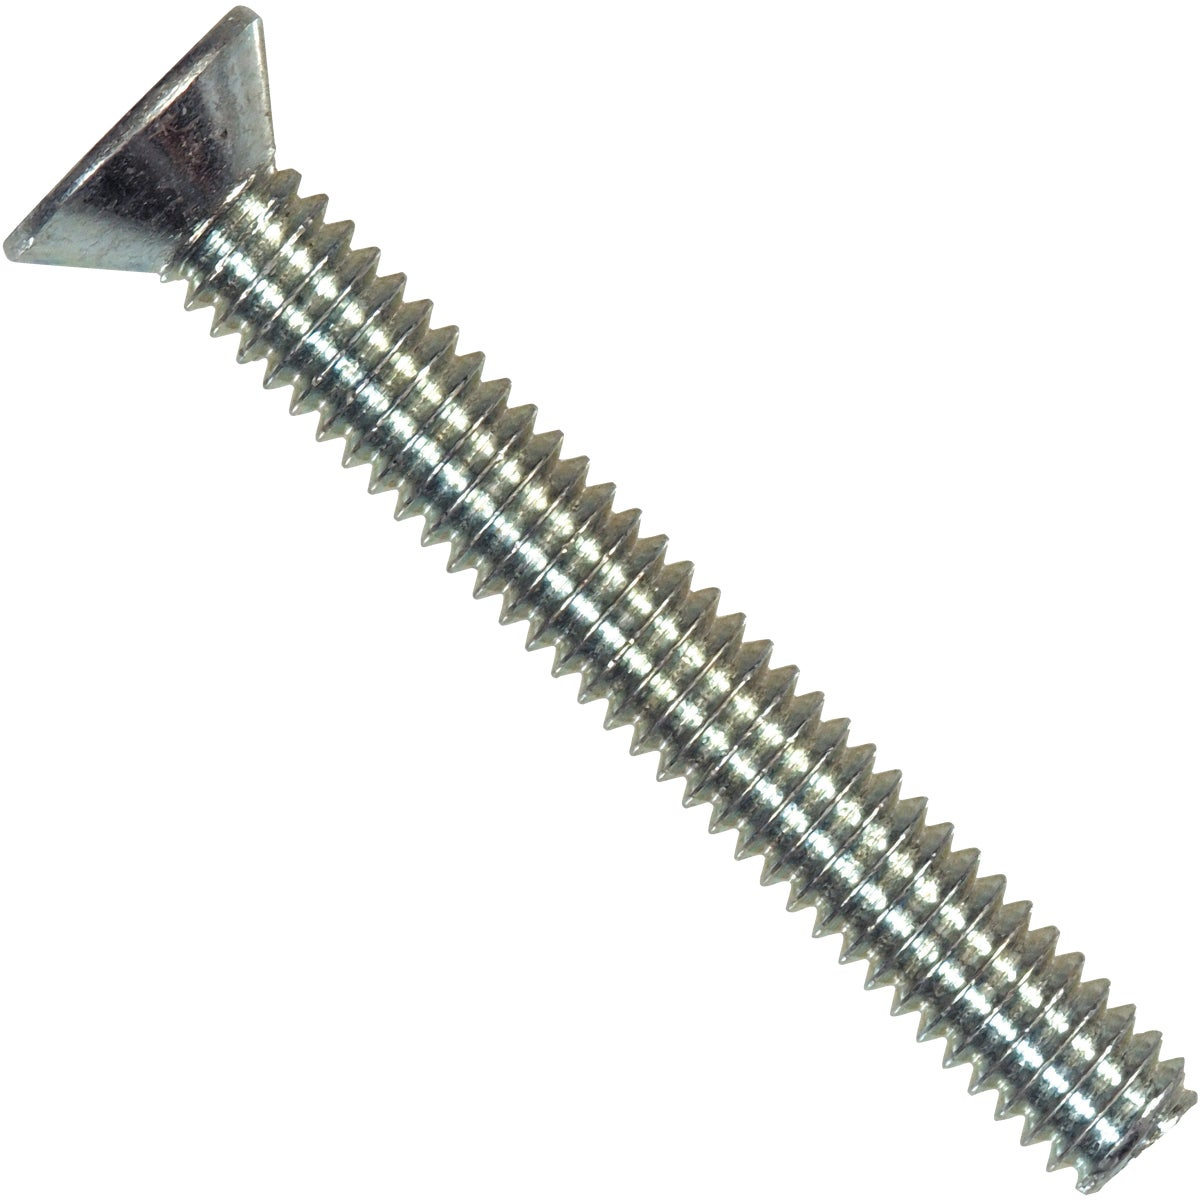 10-24X1/2 FH MACH SCREW - 101075 by Hillman Fastener